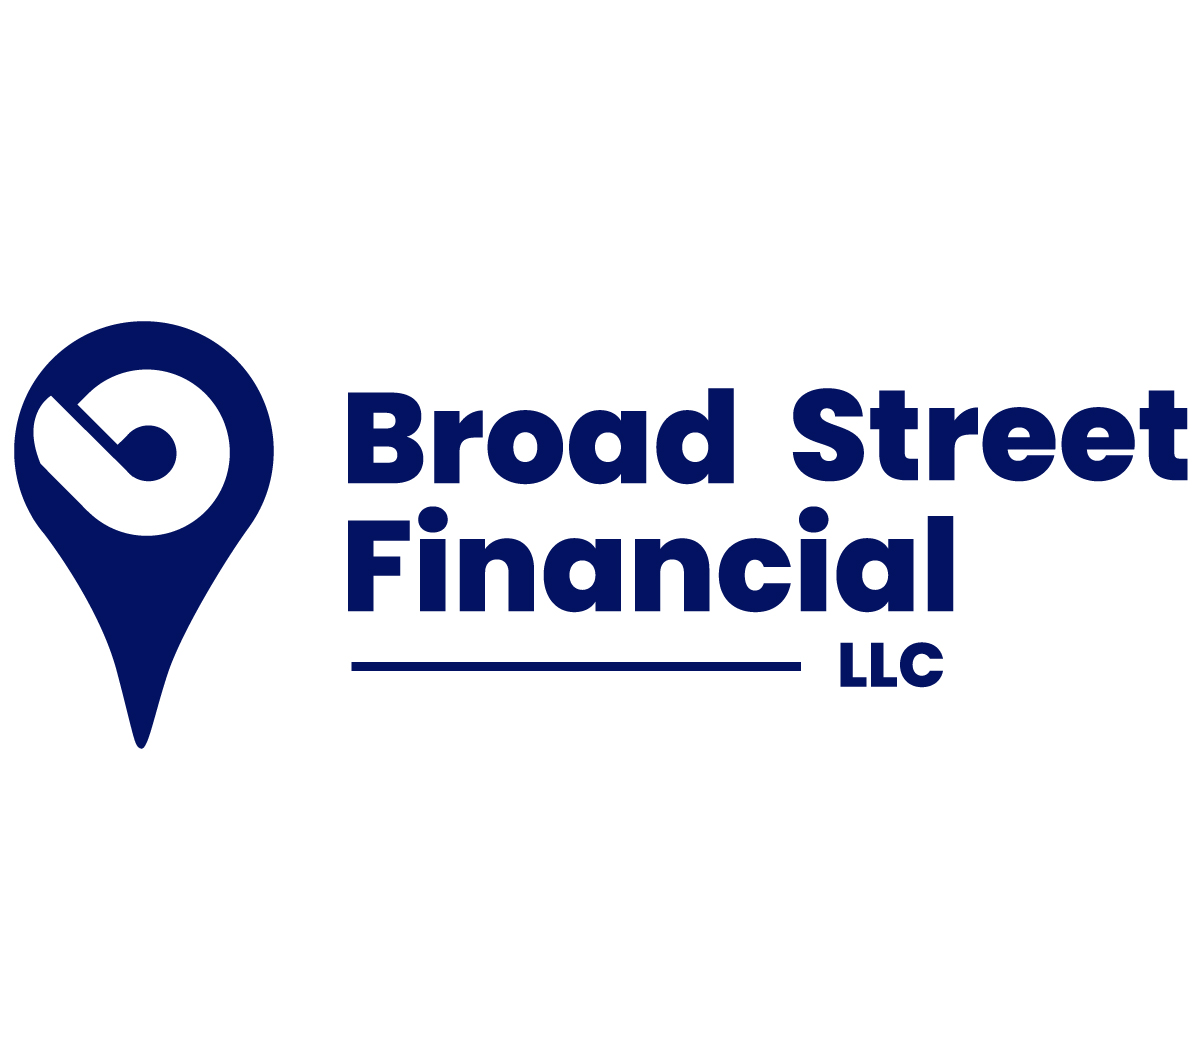 Broad_Street_Financial_Logo_13.jpg